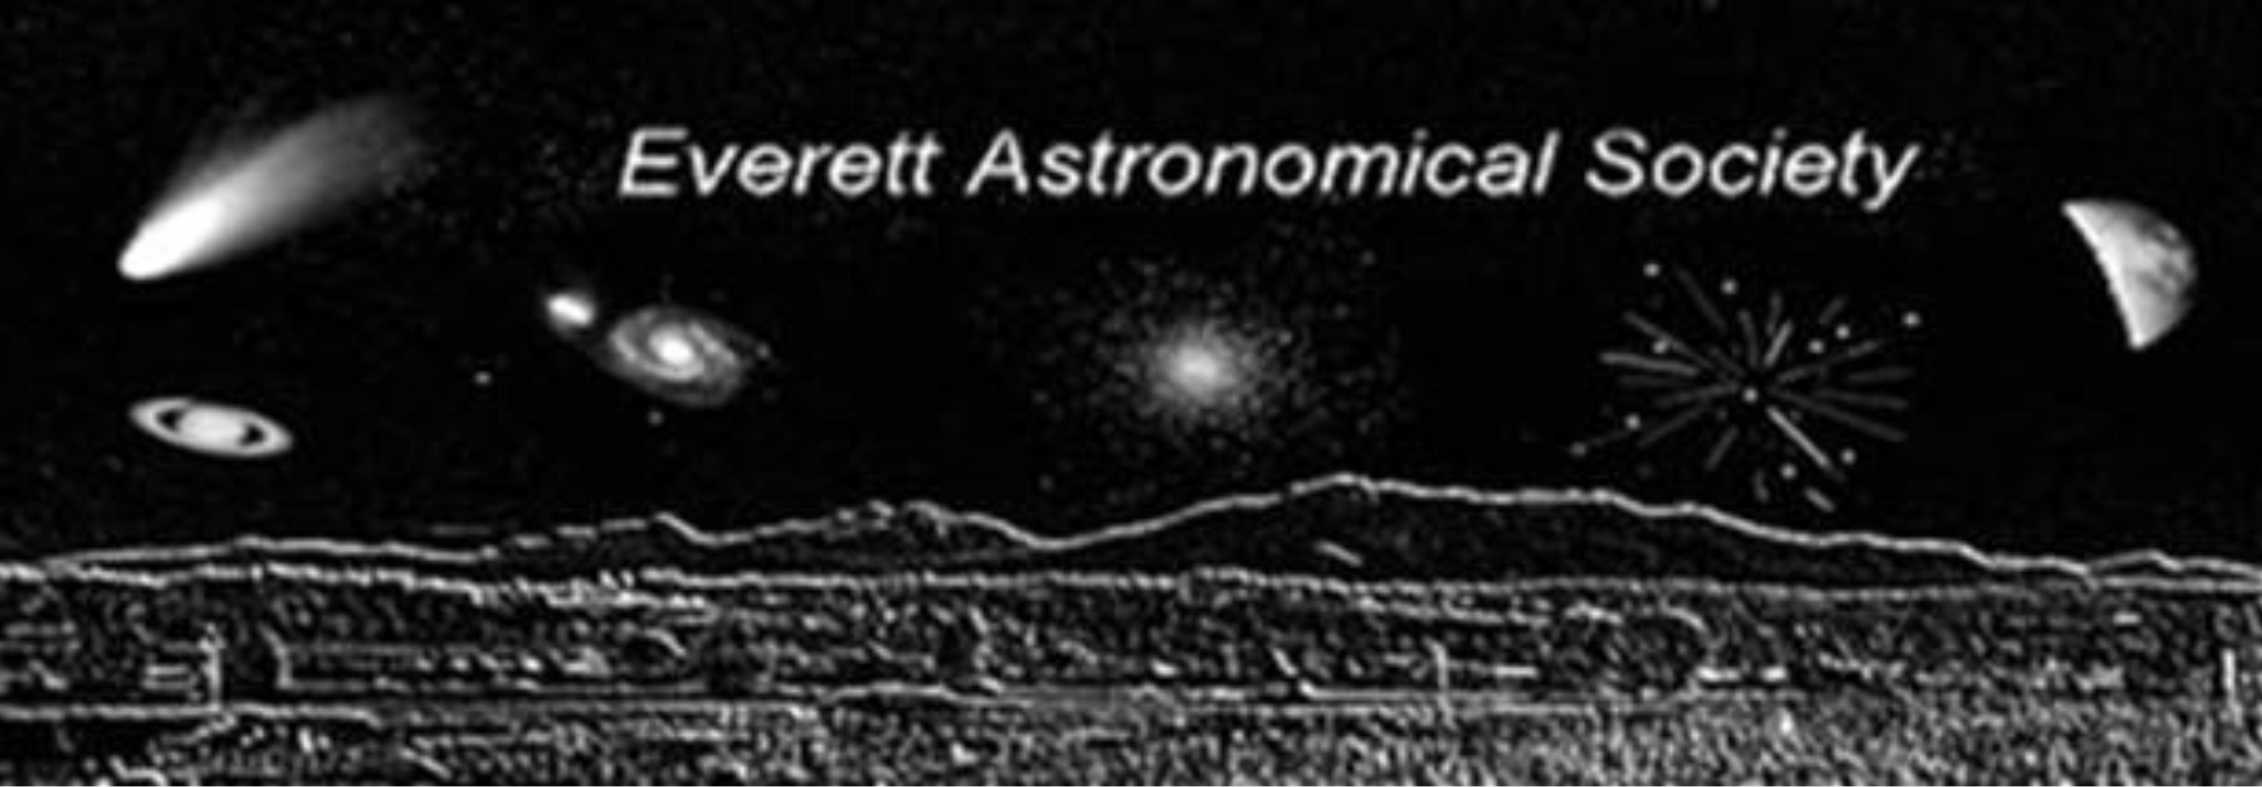 Everett Astronomical Society Logo